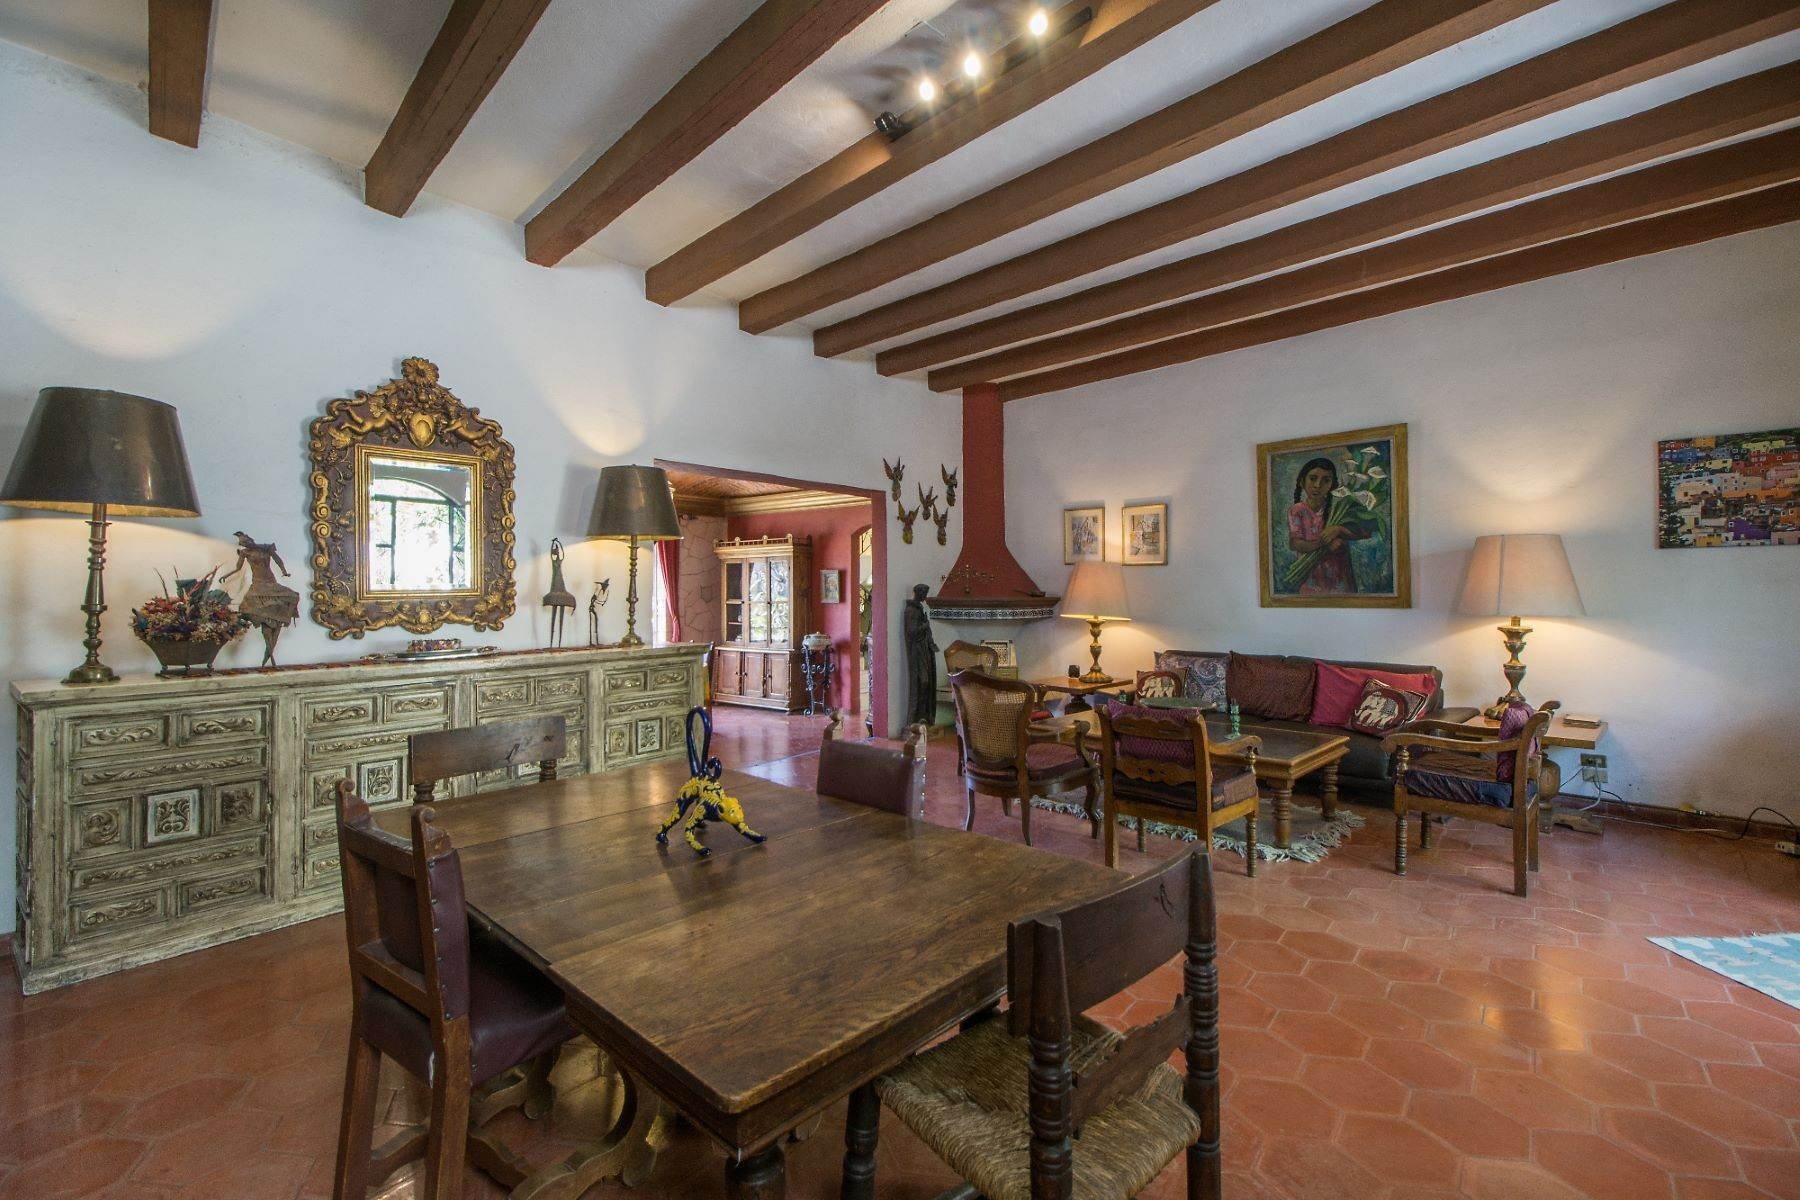 Single Family Homes for Sale at Casa Christina San Antonio, San Miguel De Allende, Guanajuato Mexico